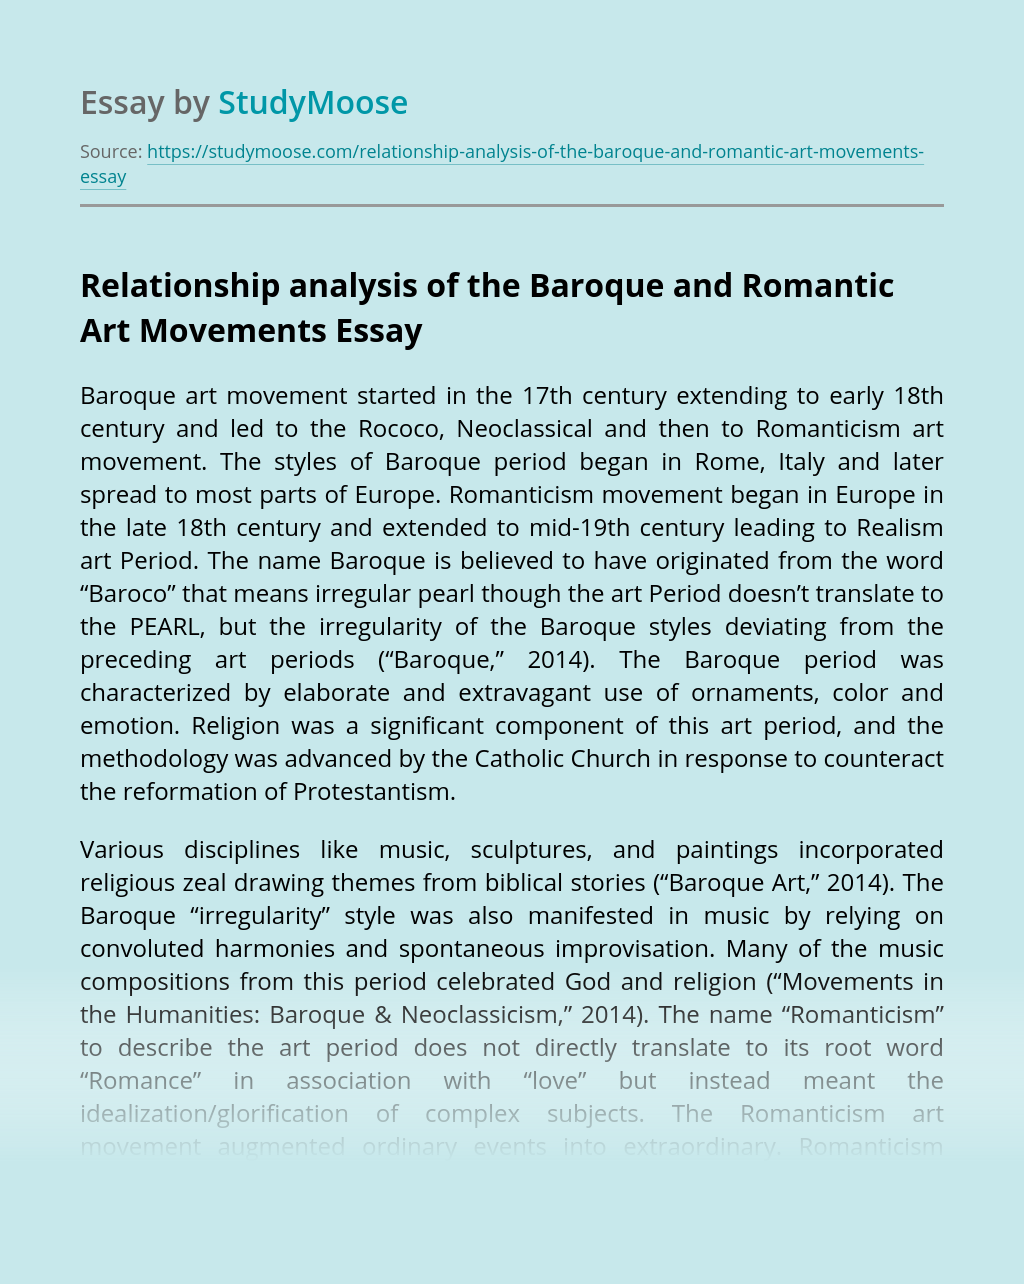 Relationship analysis of the Baroque and Romantic Art Movements